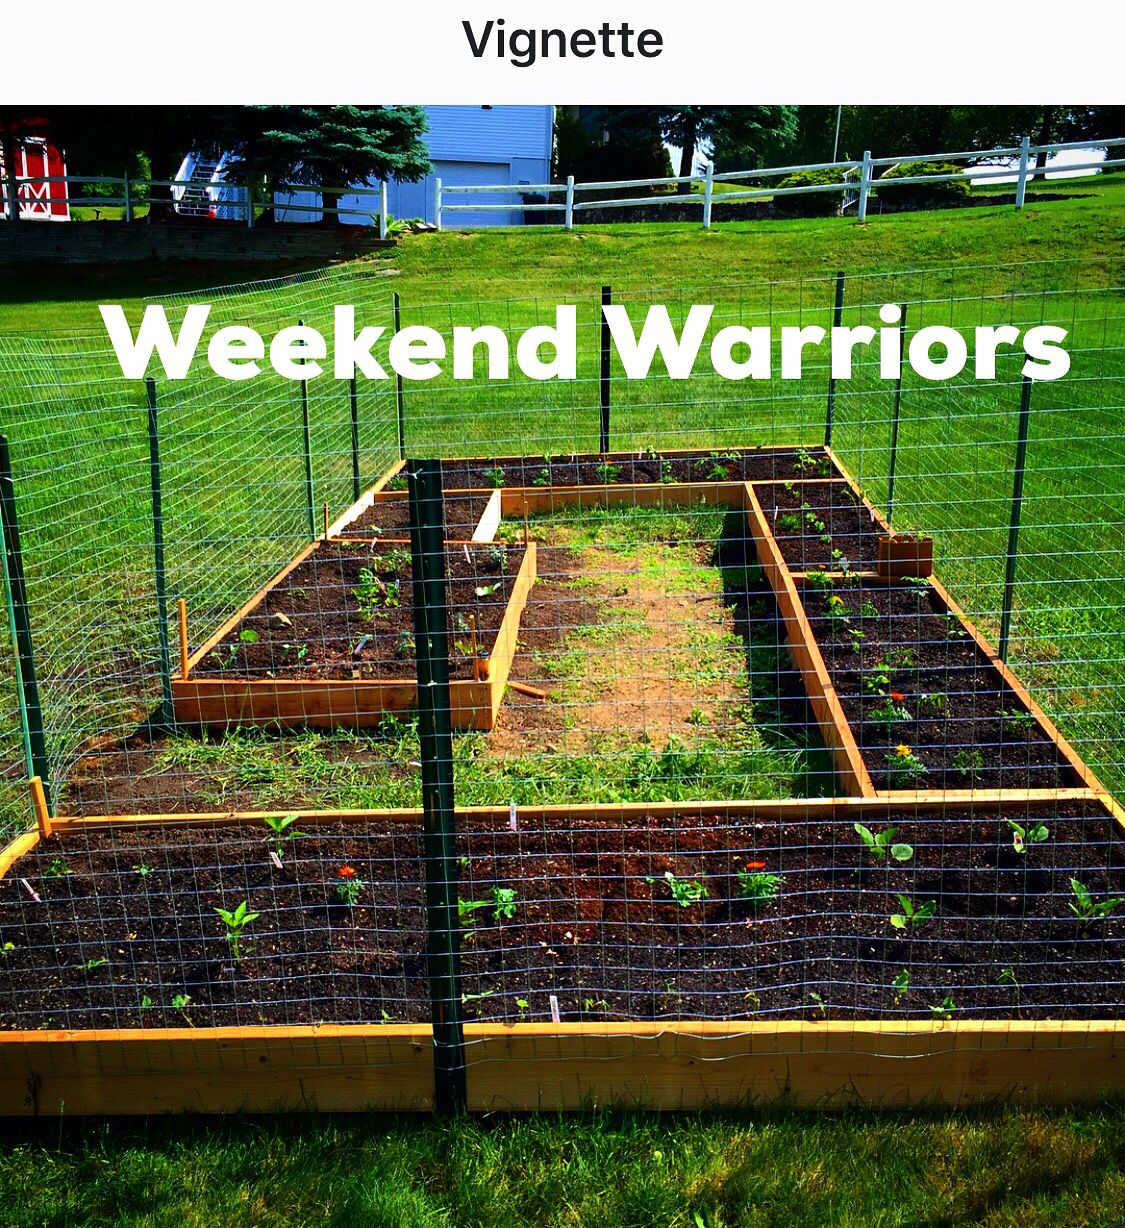 Built a RaisedBed Garden this weekend. Added composted soil & plants we started from seeds. The seeds were saved from foods & flowers we grew organically last season